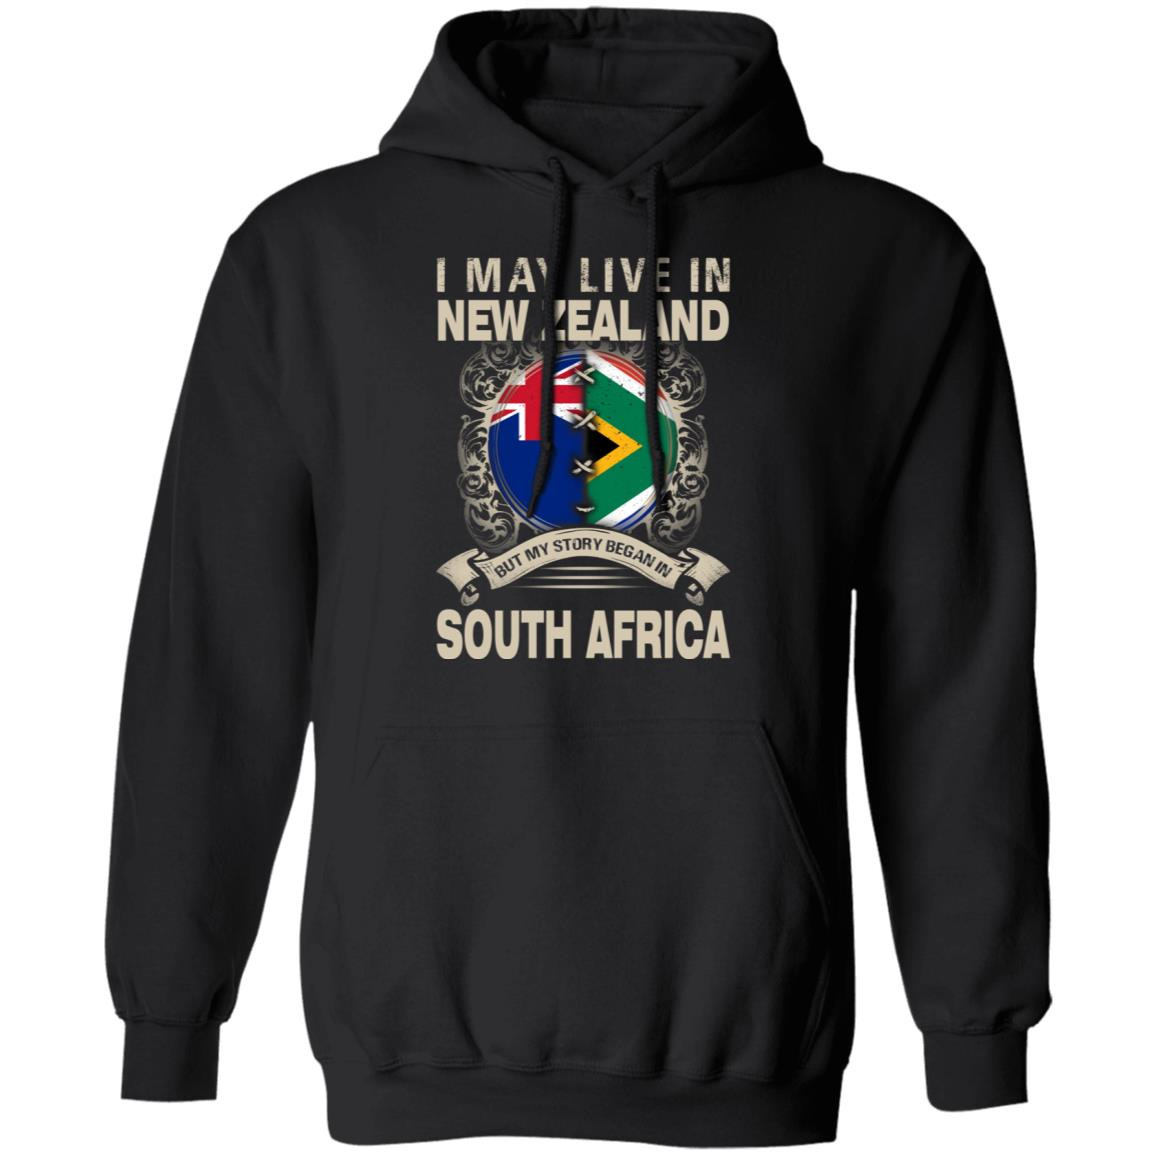 I MAY LIVE NEW ZEALAND IN BUT MY STORY BEGAN IN SOUTH AFRICA